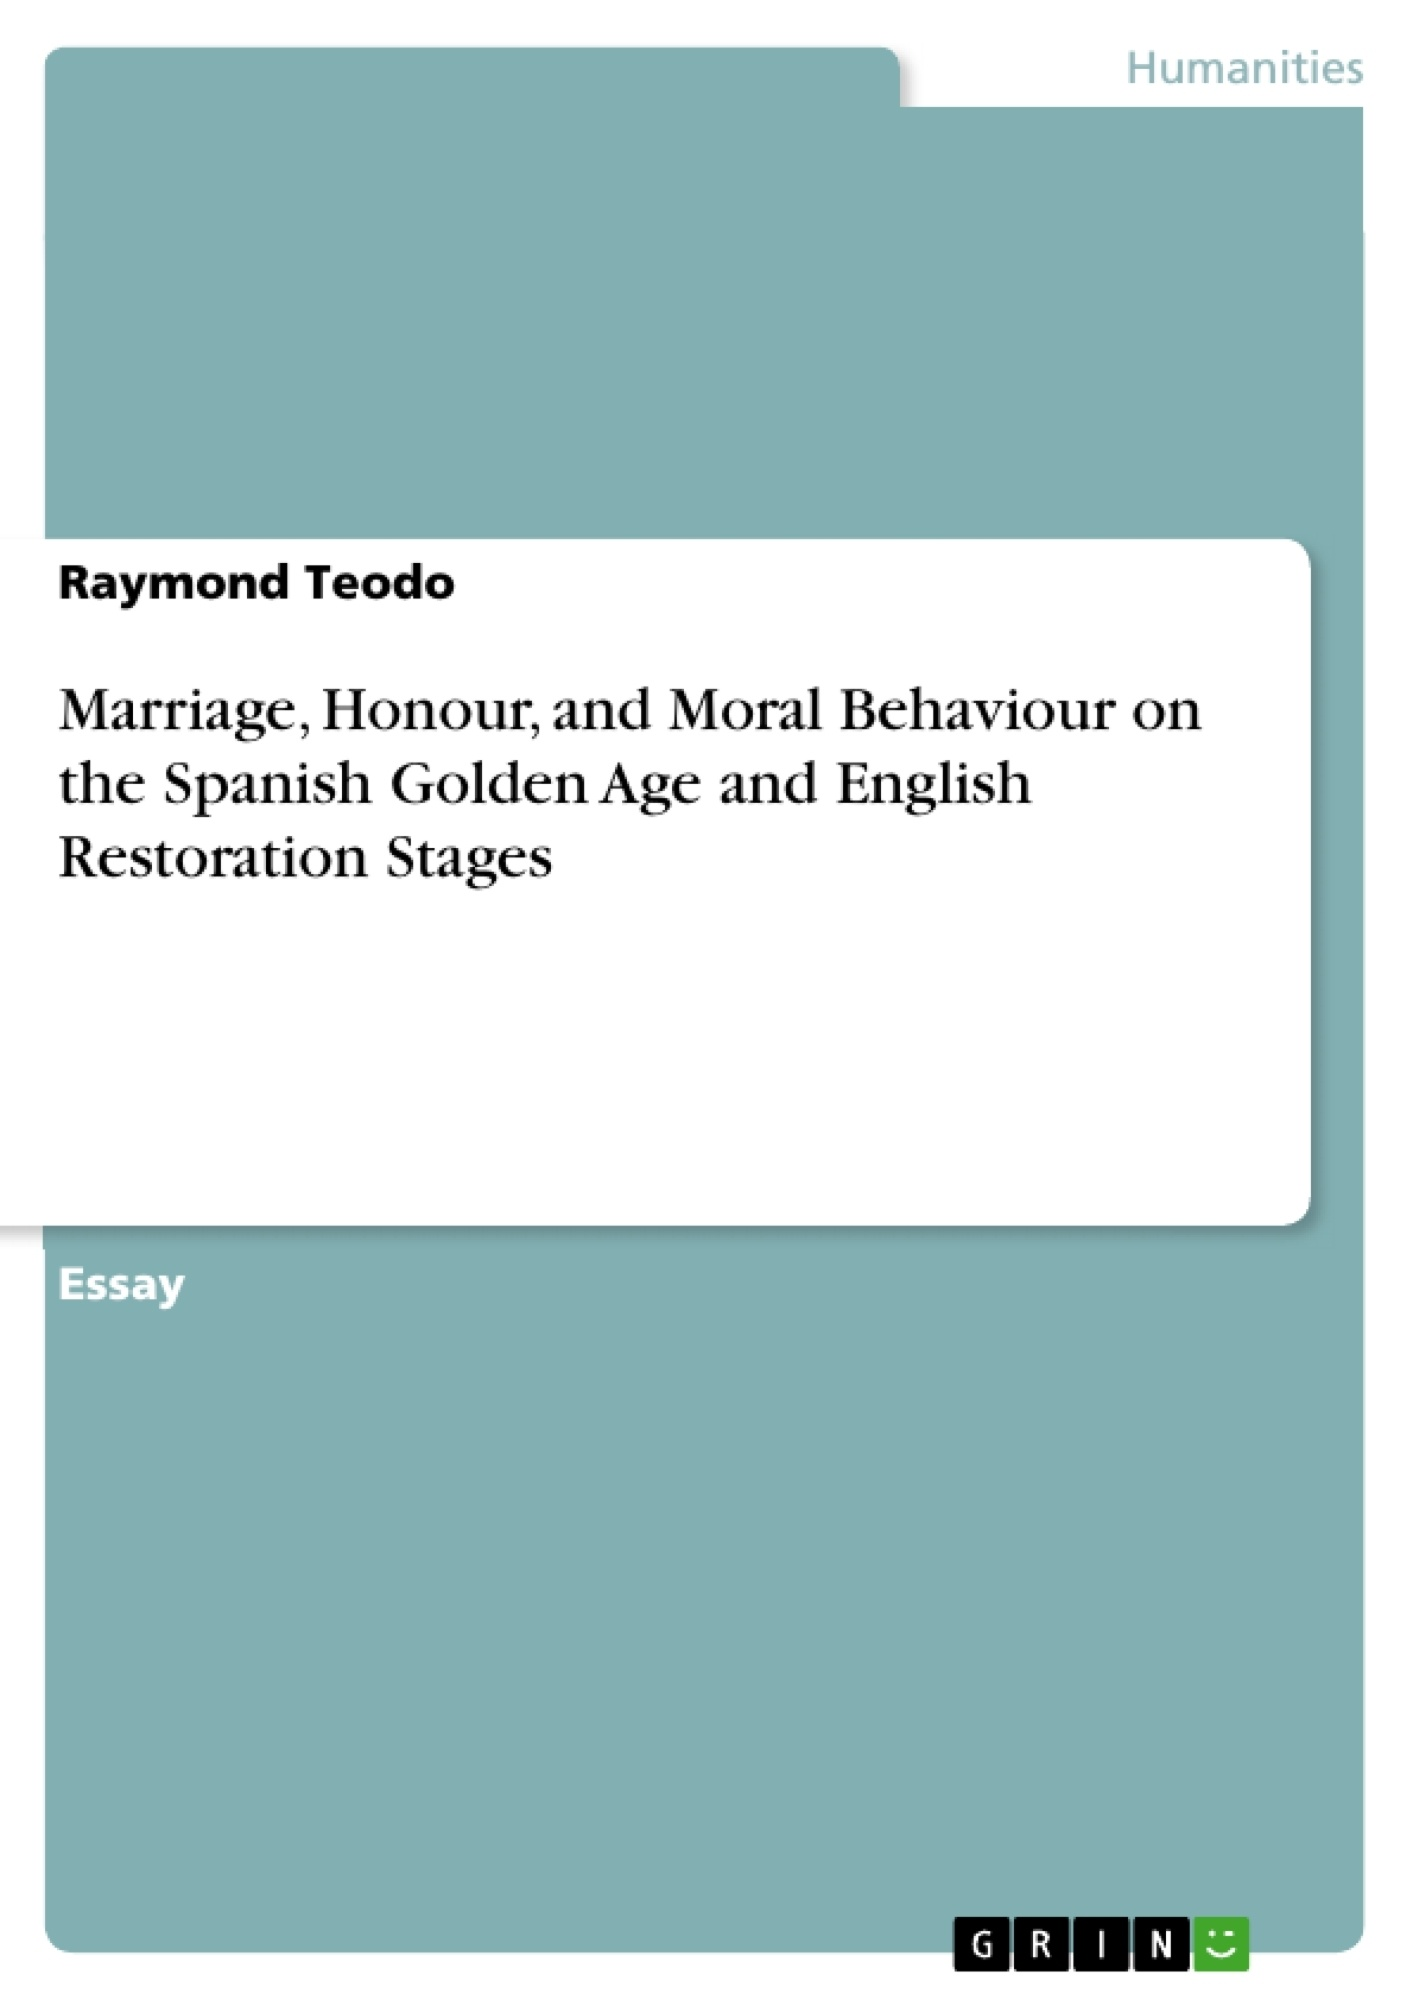 Title: Marriage, Honour, and Moral Behaviour on the Spanish Golden Age and English Restoration Stages